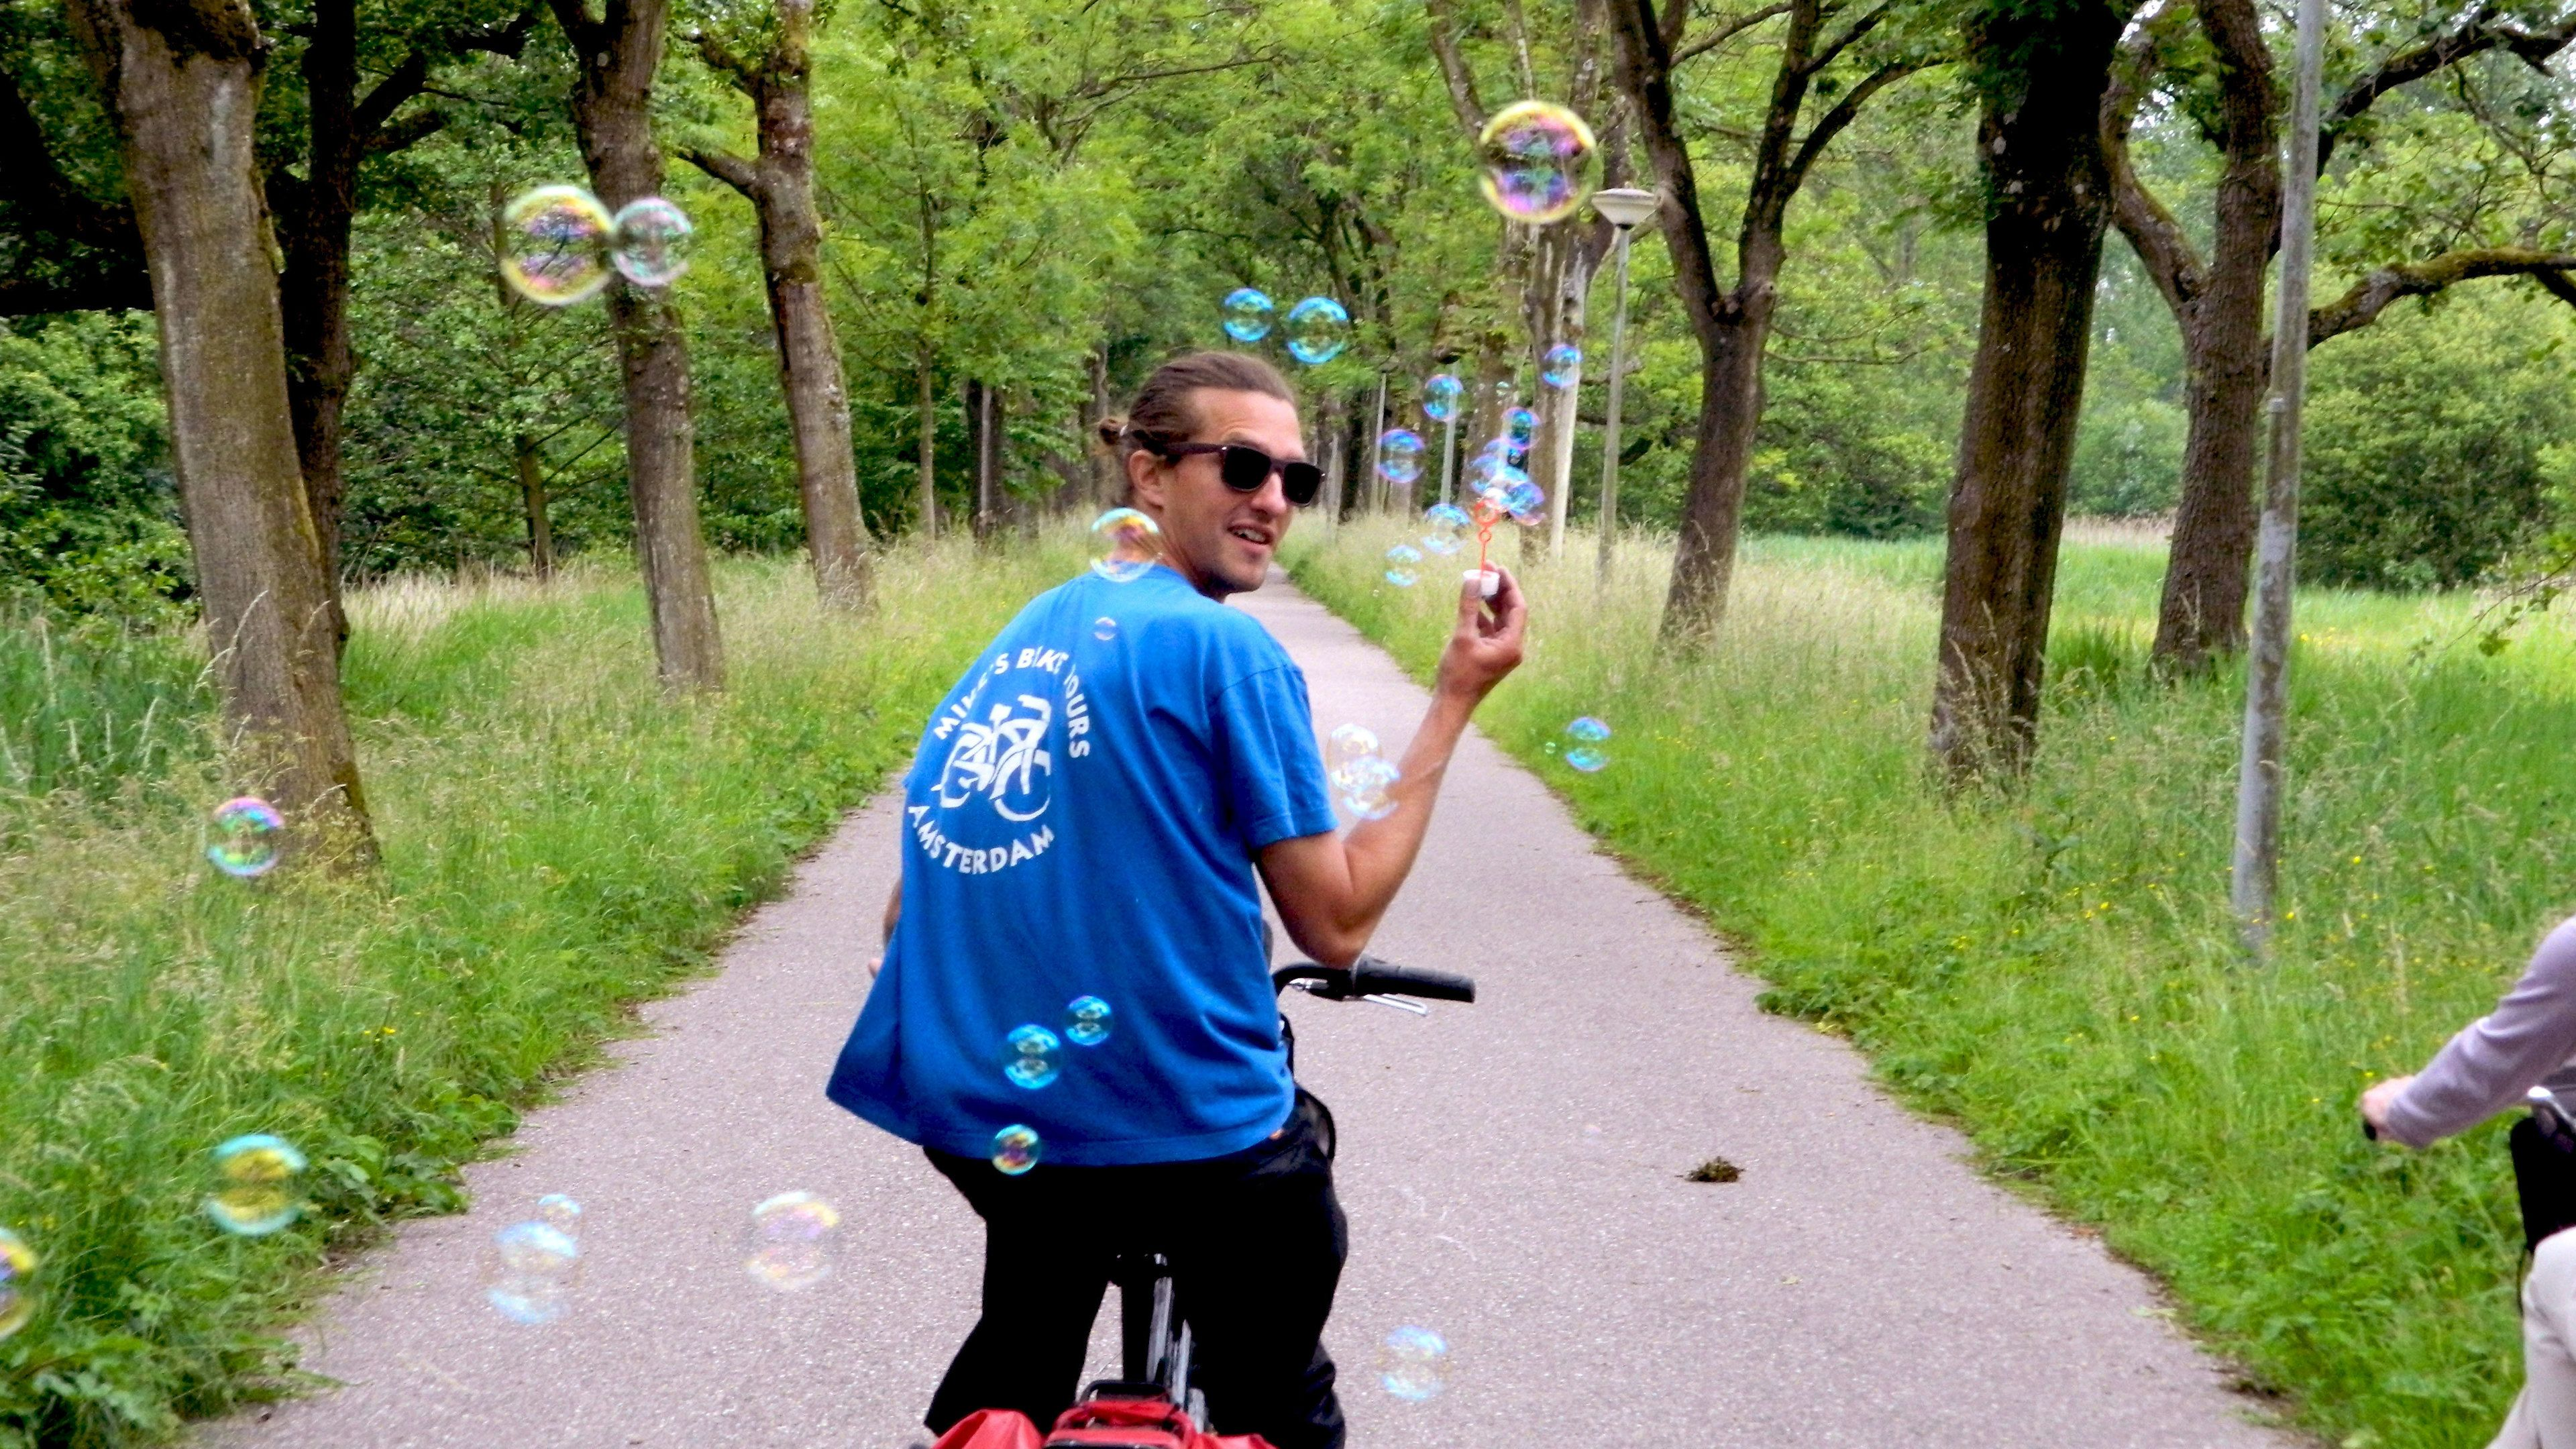 Bicycle rider with bubbles in Amsterdam